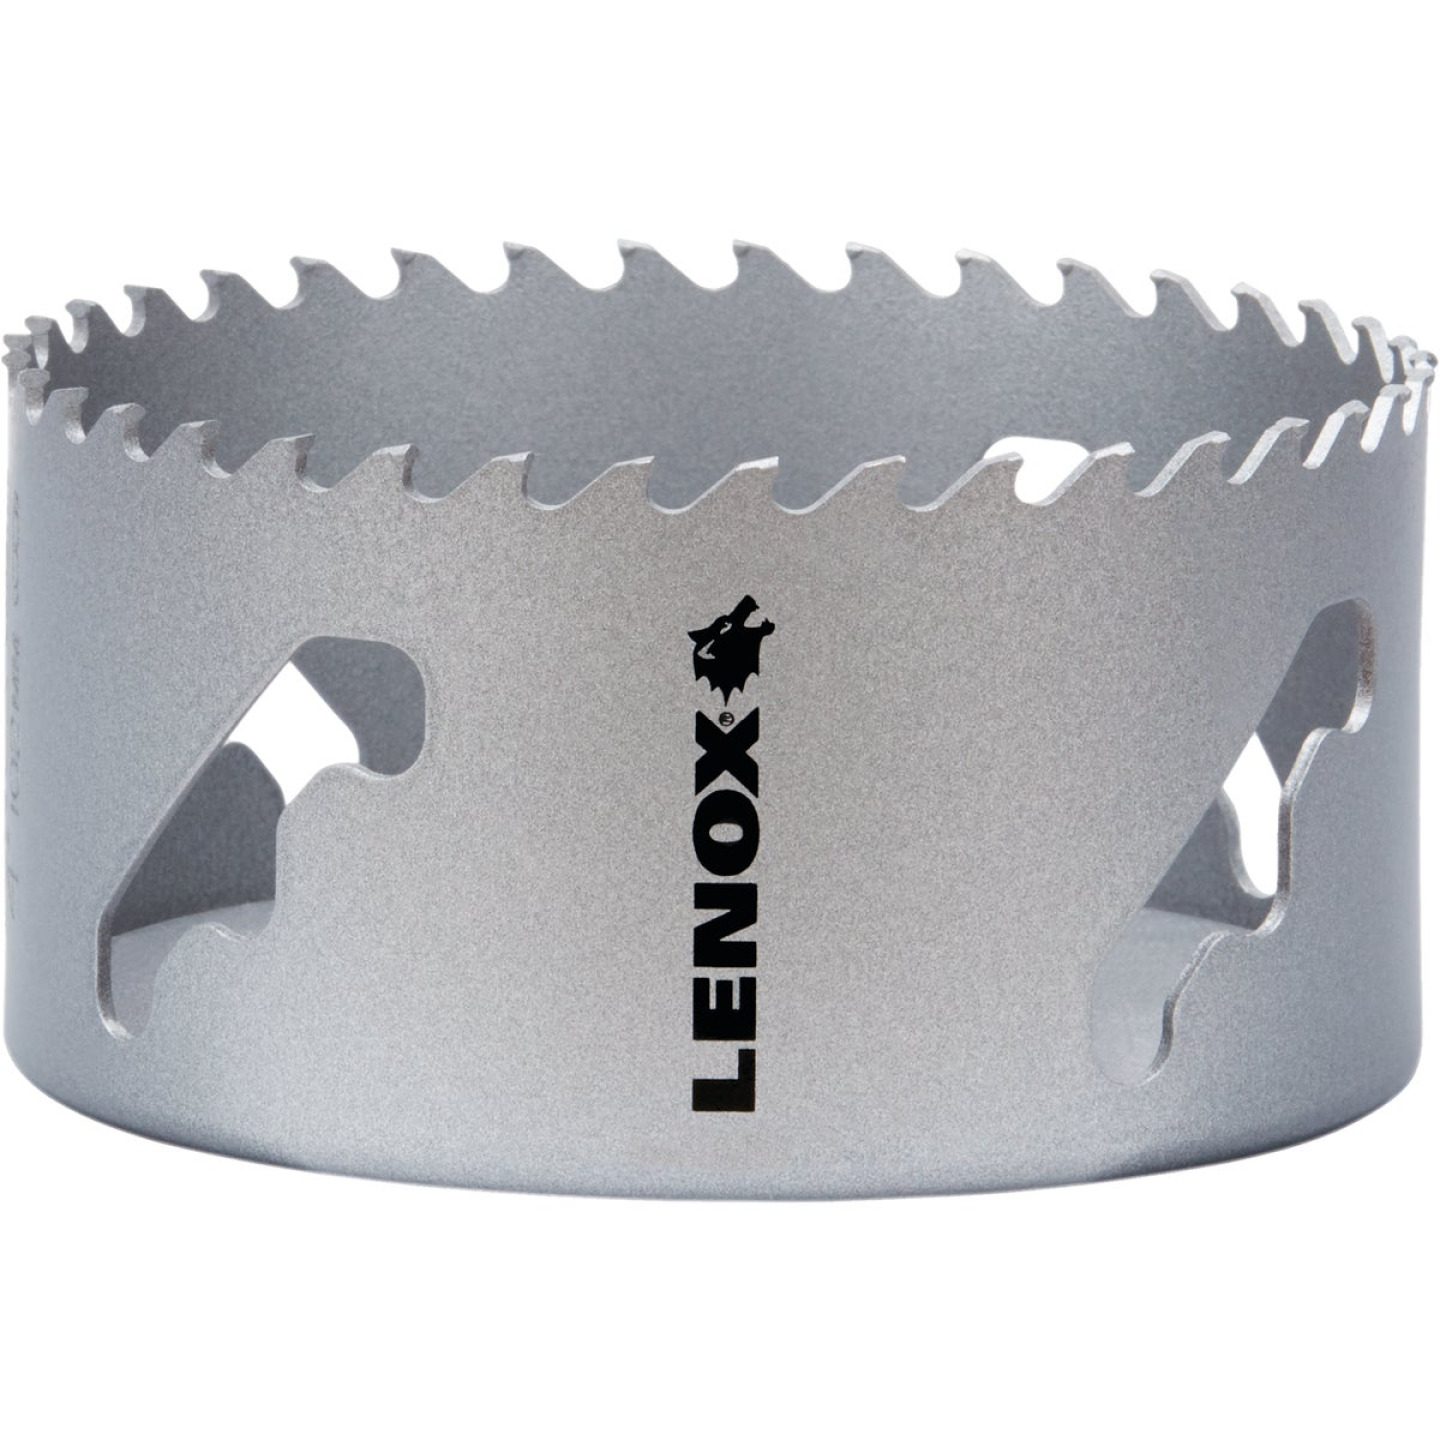 Lenox 4-1/2 In. Carbide-Tipped Hole Saw w/Speed Slot Image 1